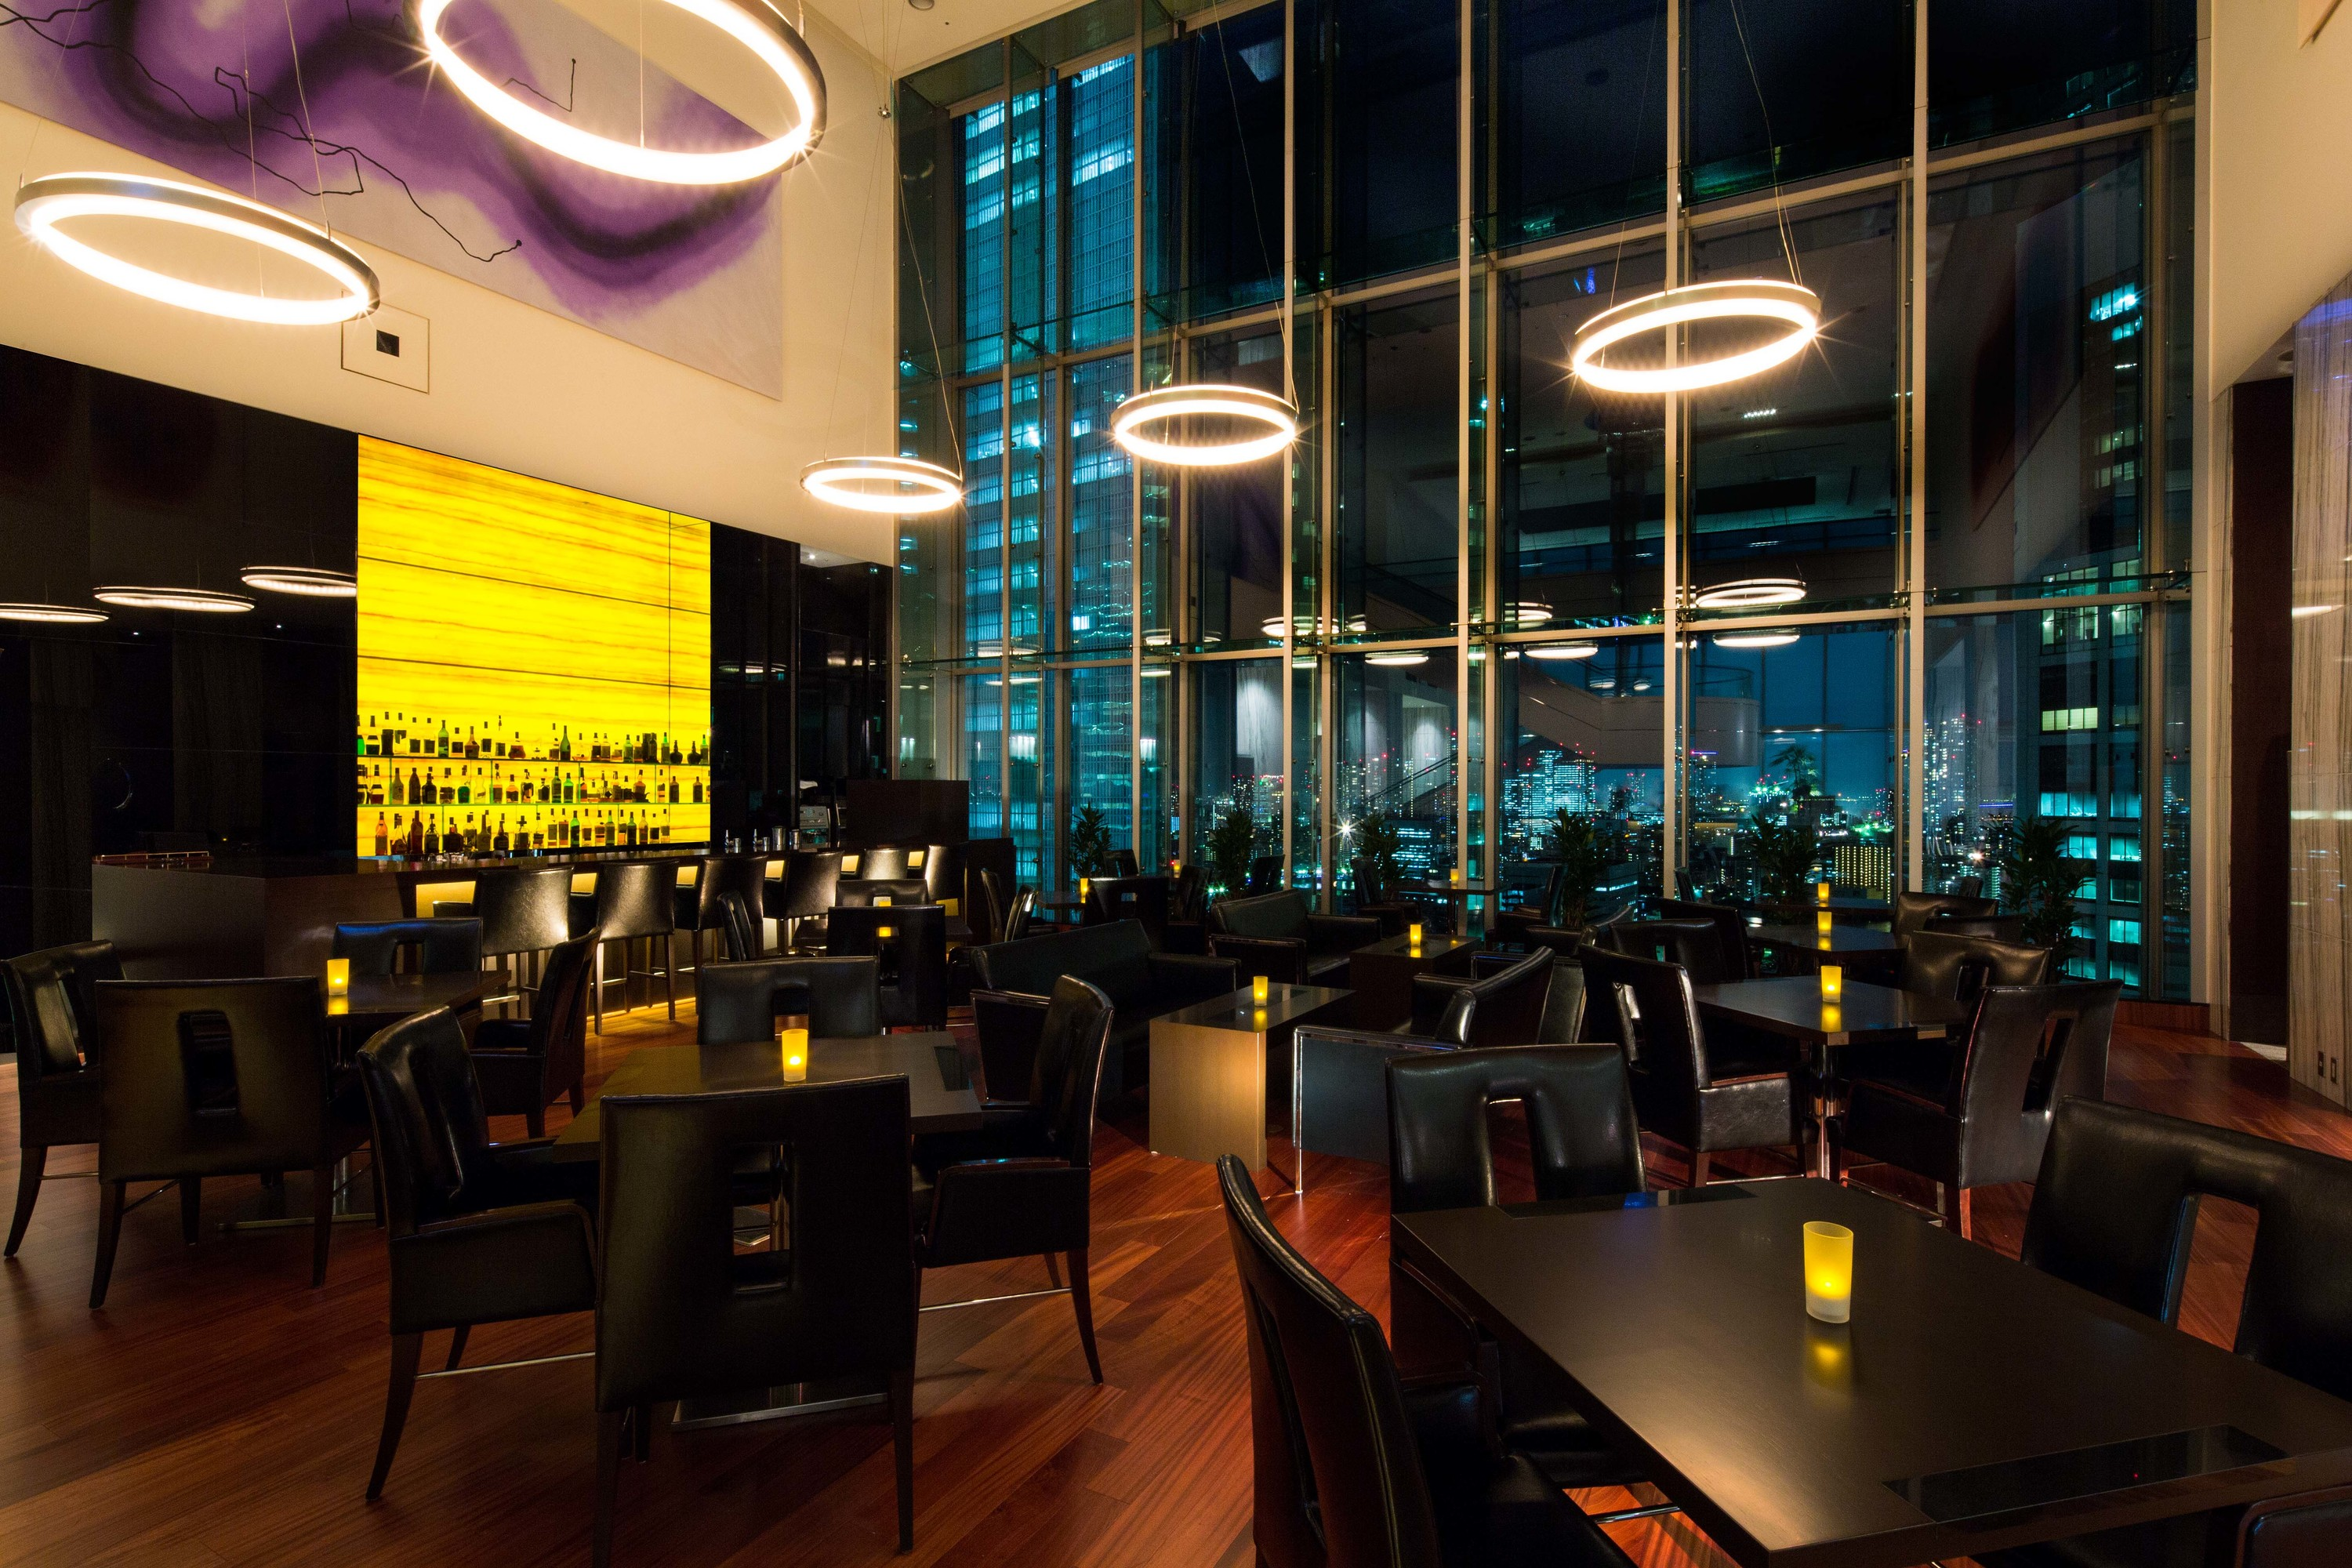 Royal Park Hotel The Shiodome Tokyo Hotels In Shiodome Tokyo